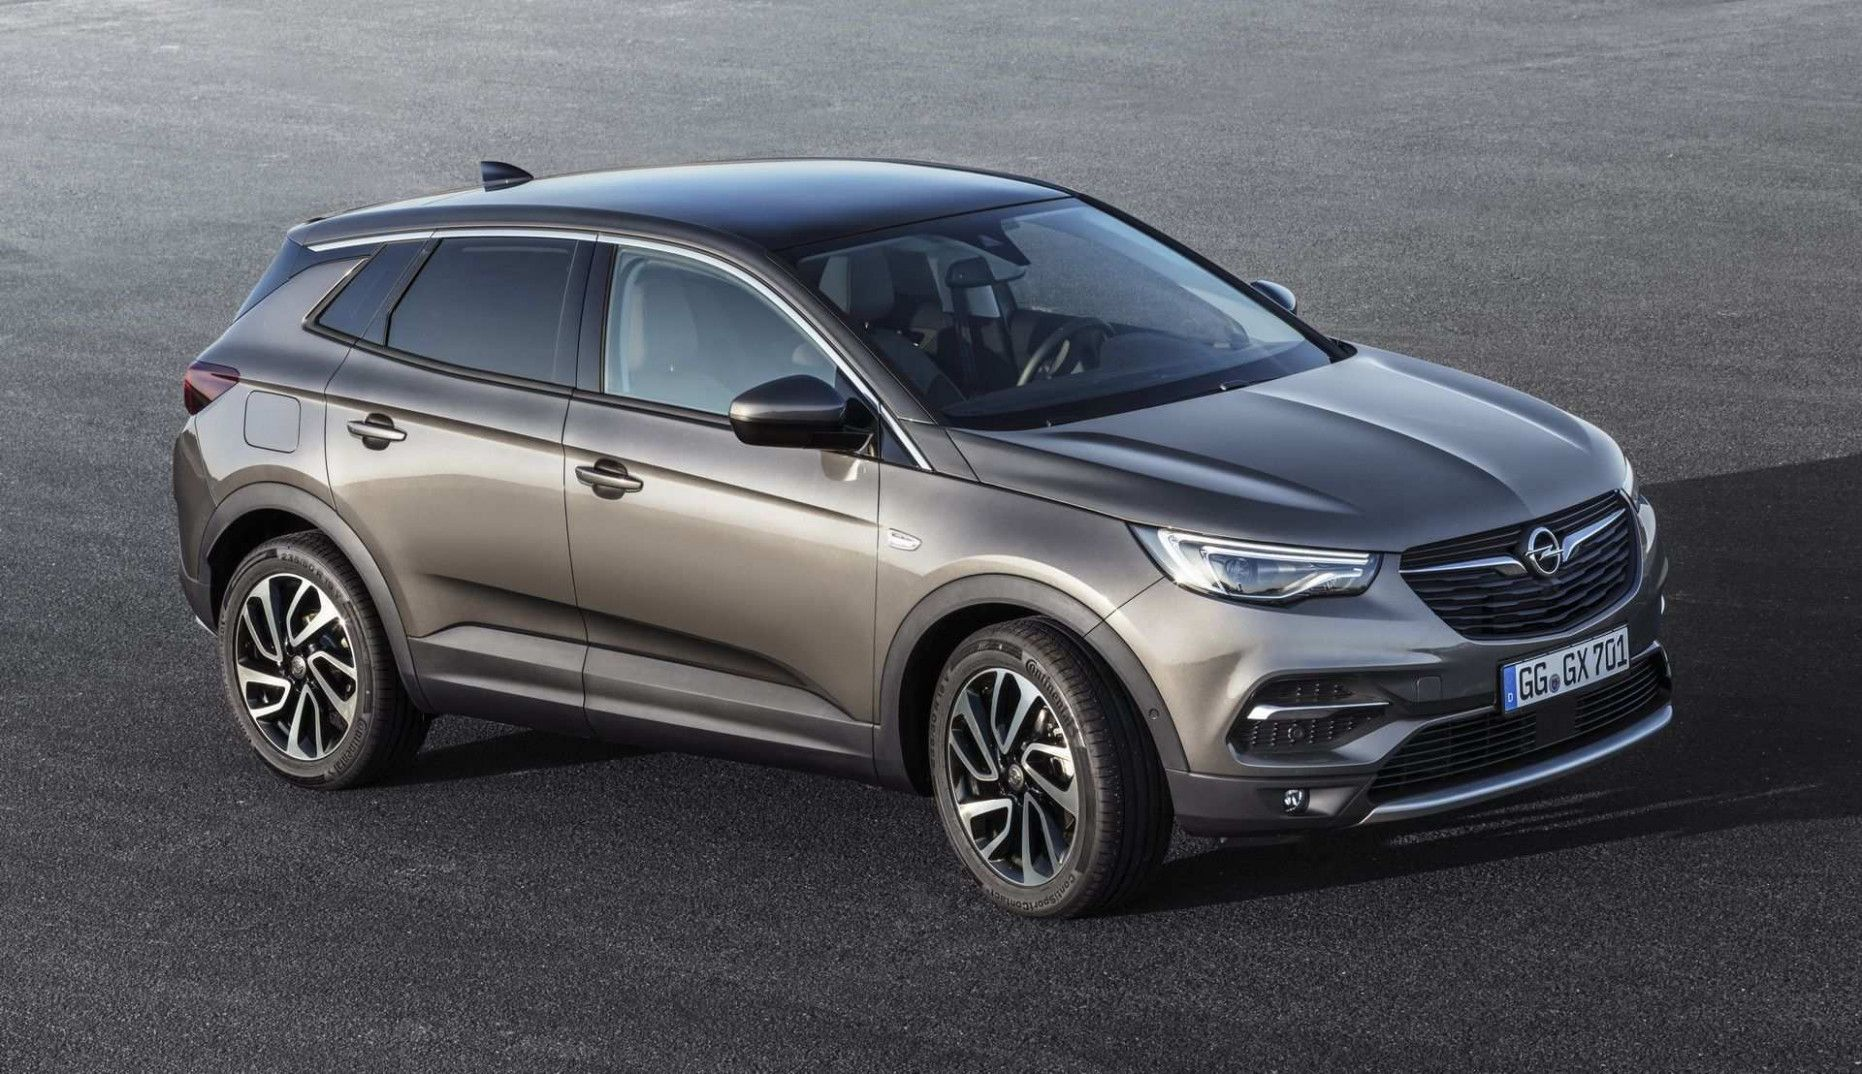 Opel Grandland X Facelift 2020 Reviews Opel Vauxhall New Suv